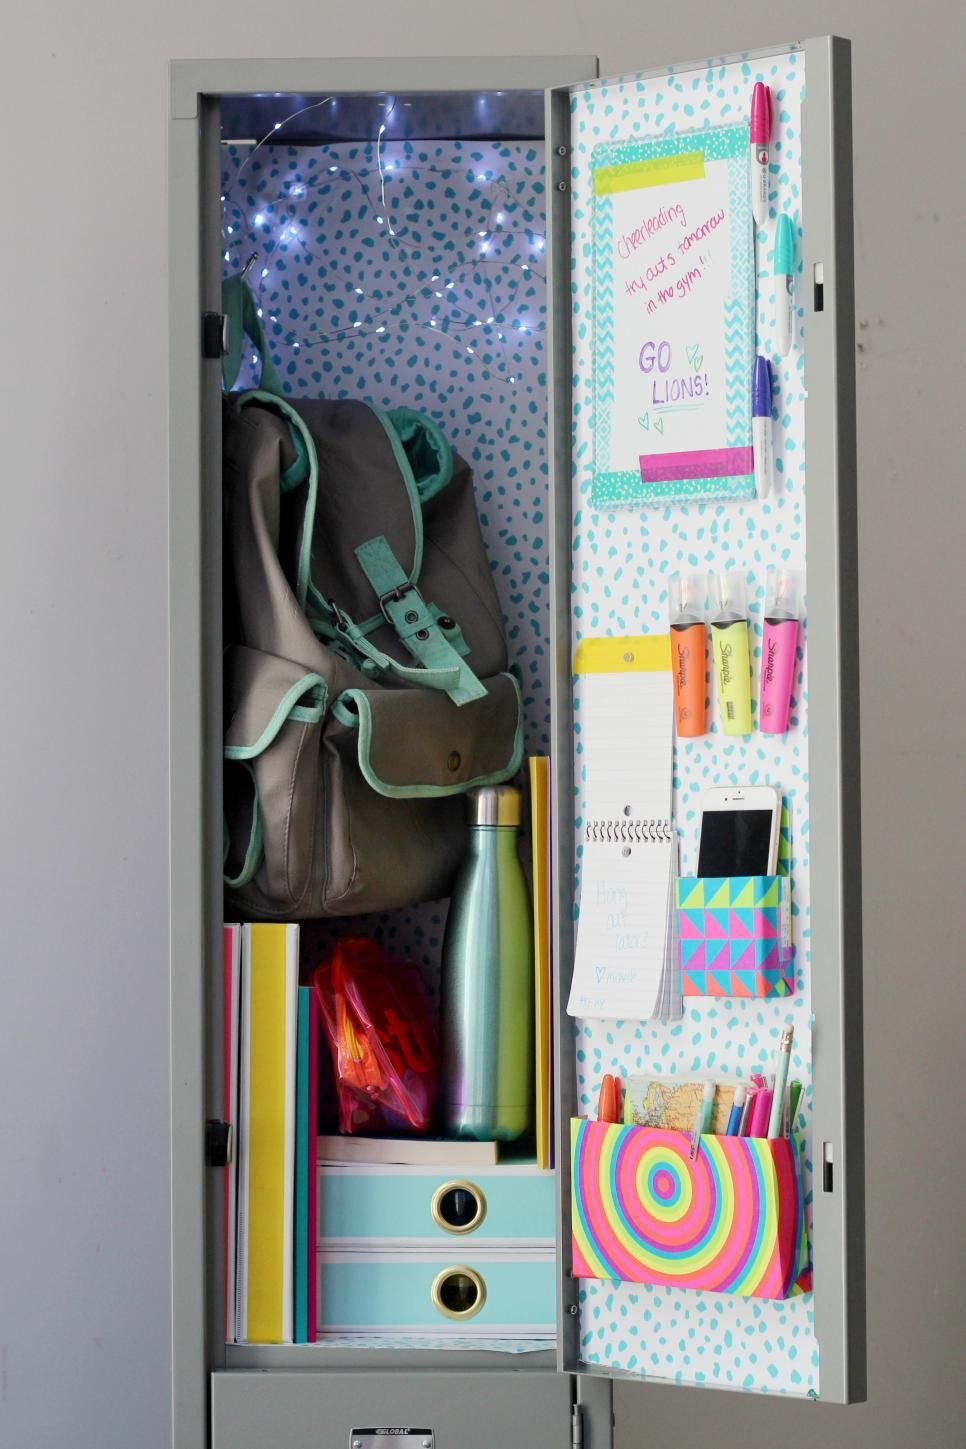 22 Diy Locker Decorating Ideas Organizing Tricks School Locker Decorations School Lockers School Locker Organization